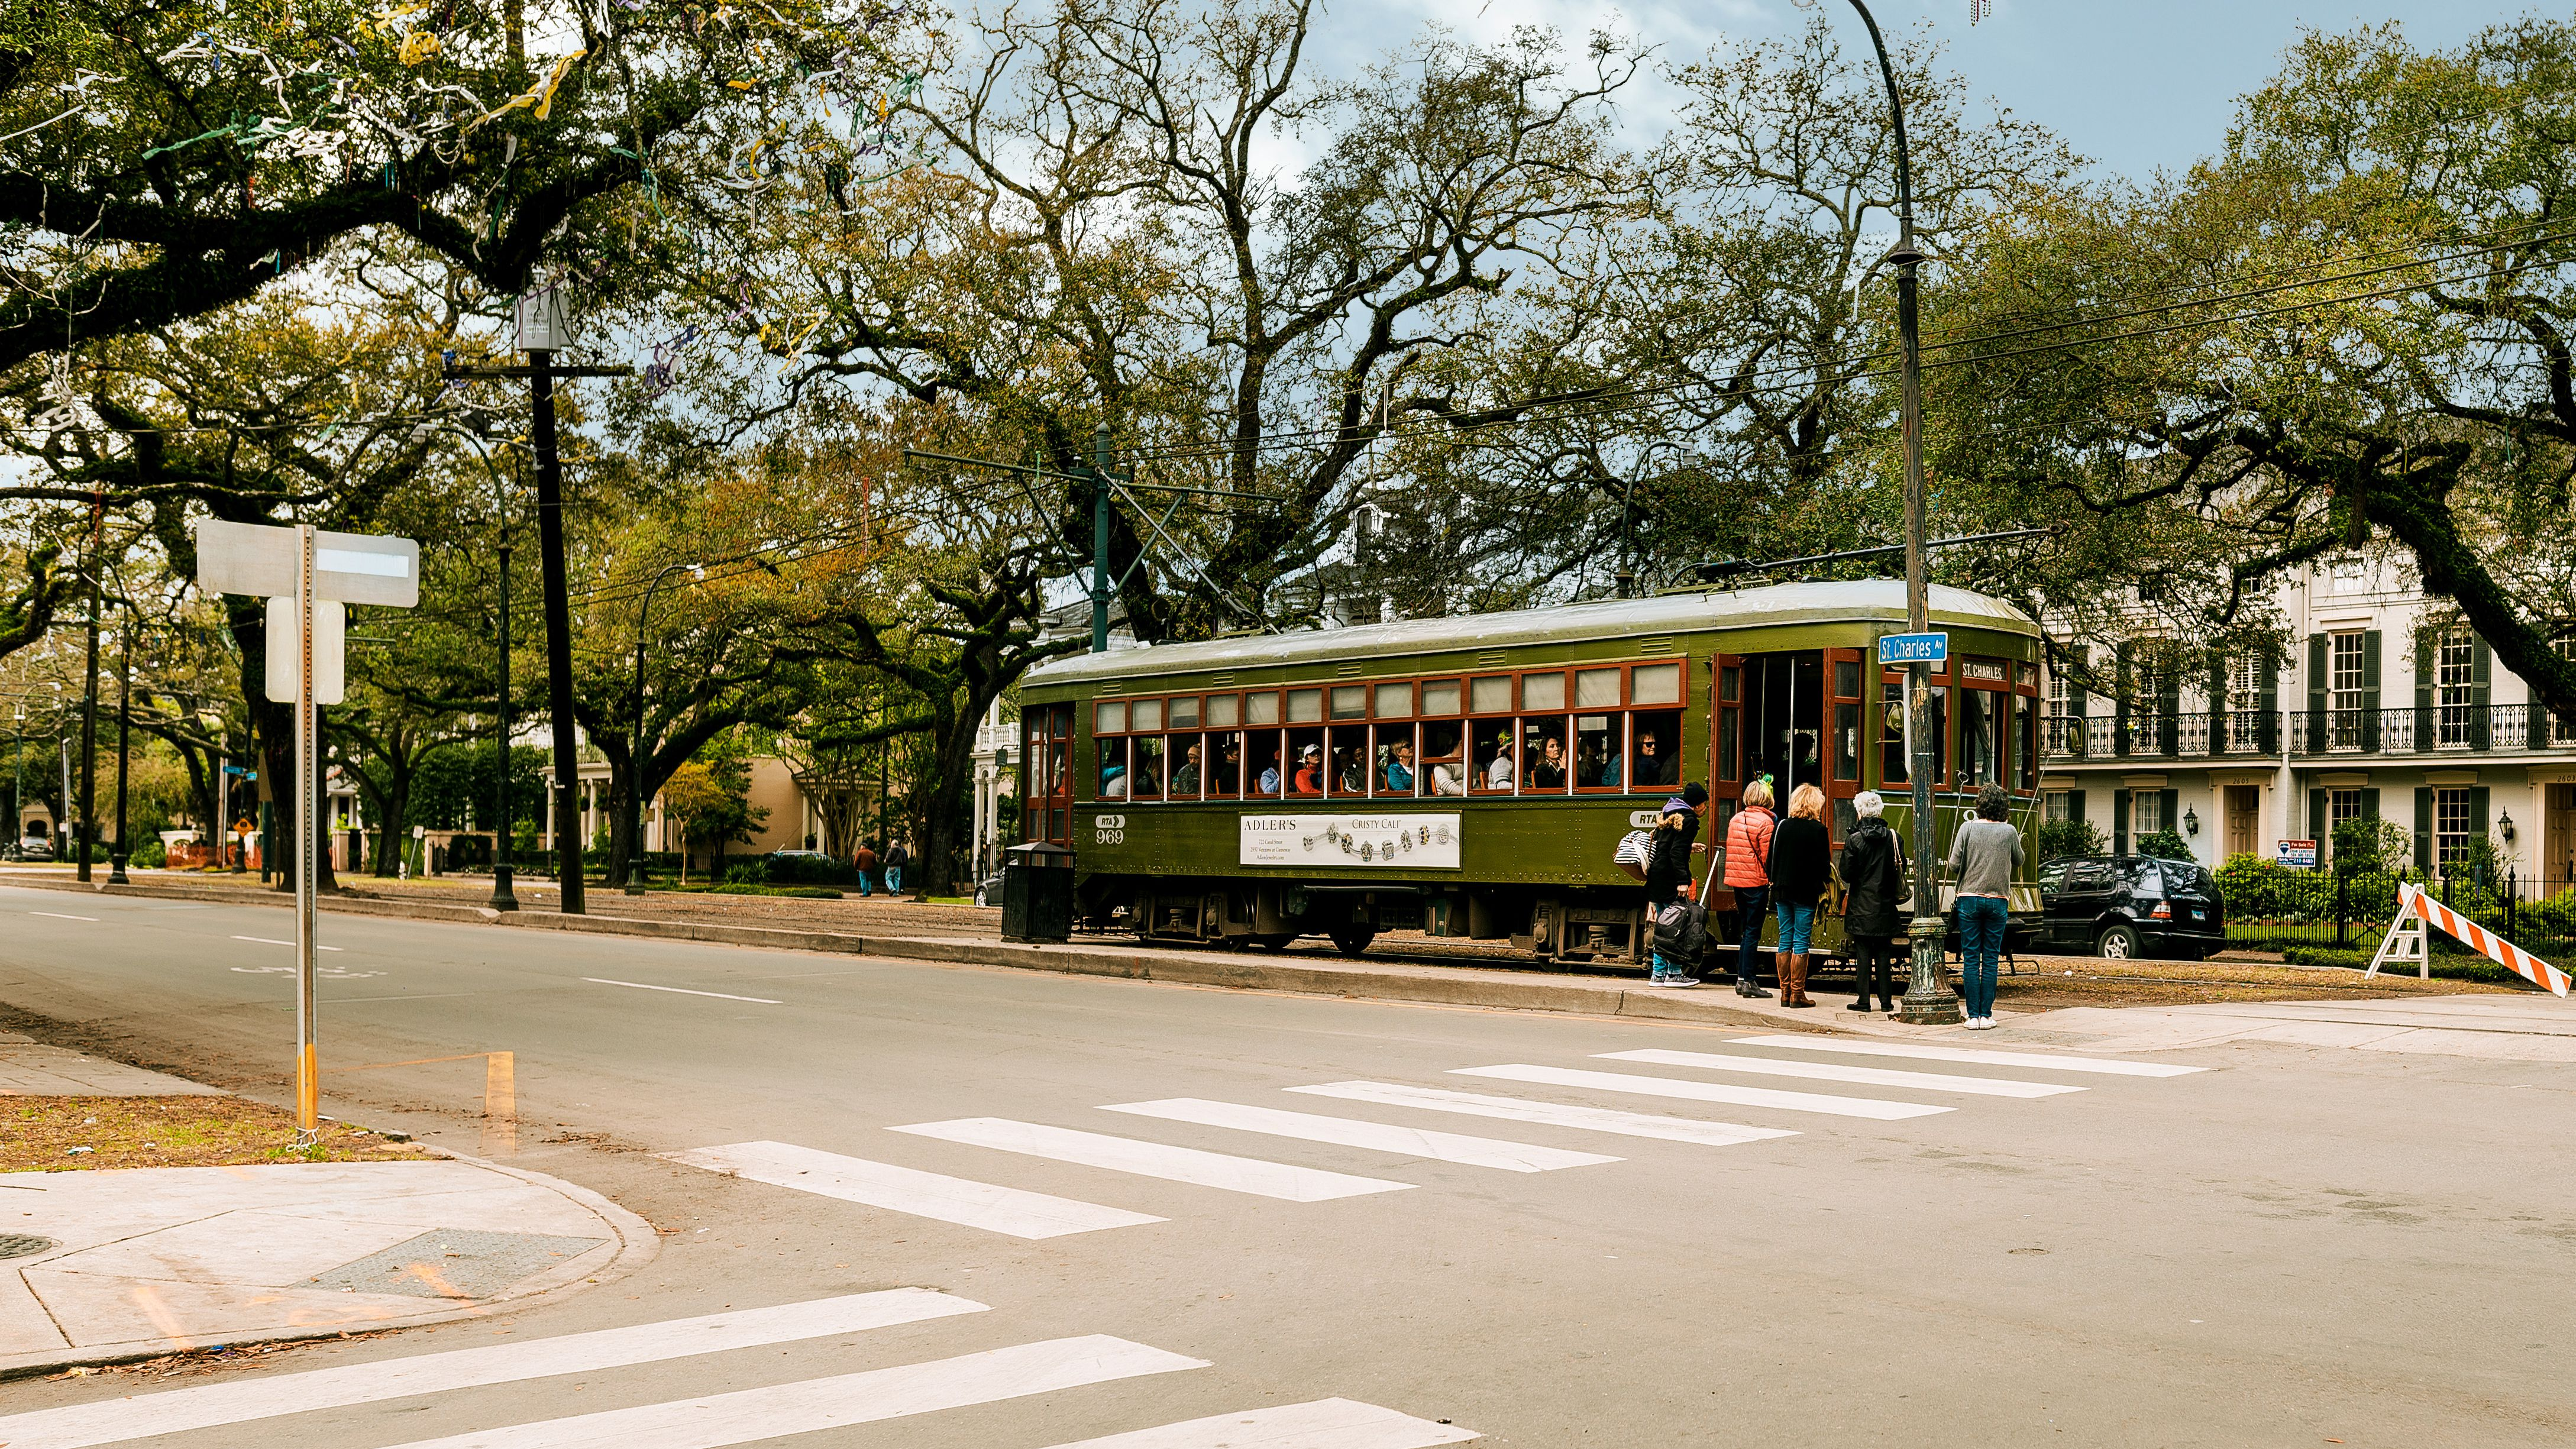 How to Take the Streetcar in New Orleans